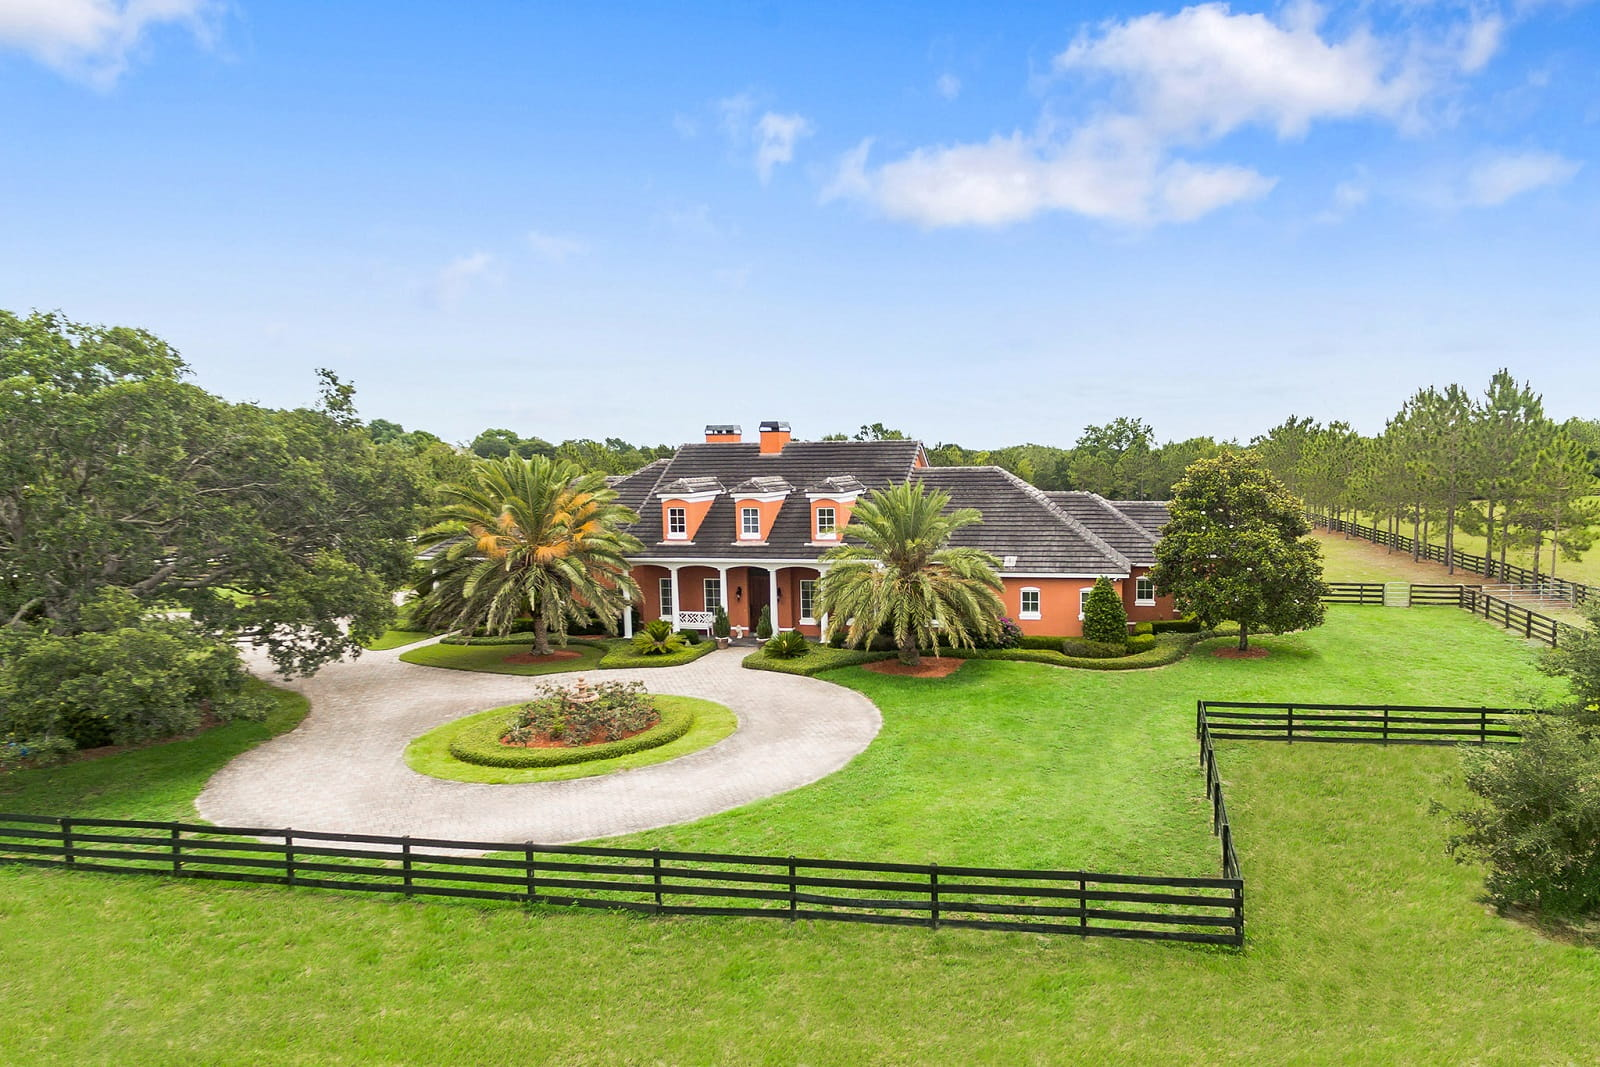 Real Estate Photography in Sanford - FL - USA - Aerial View